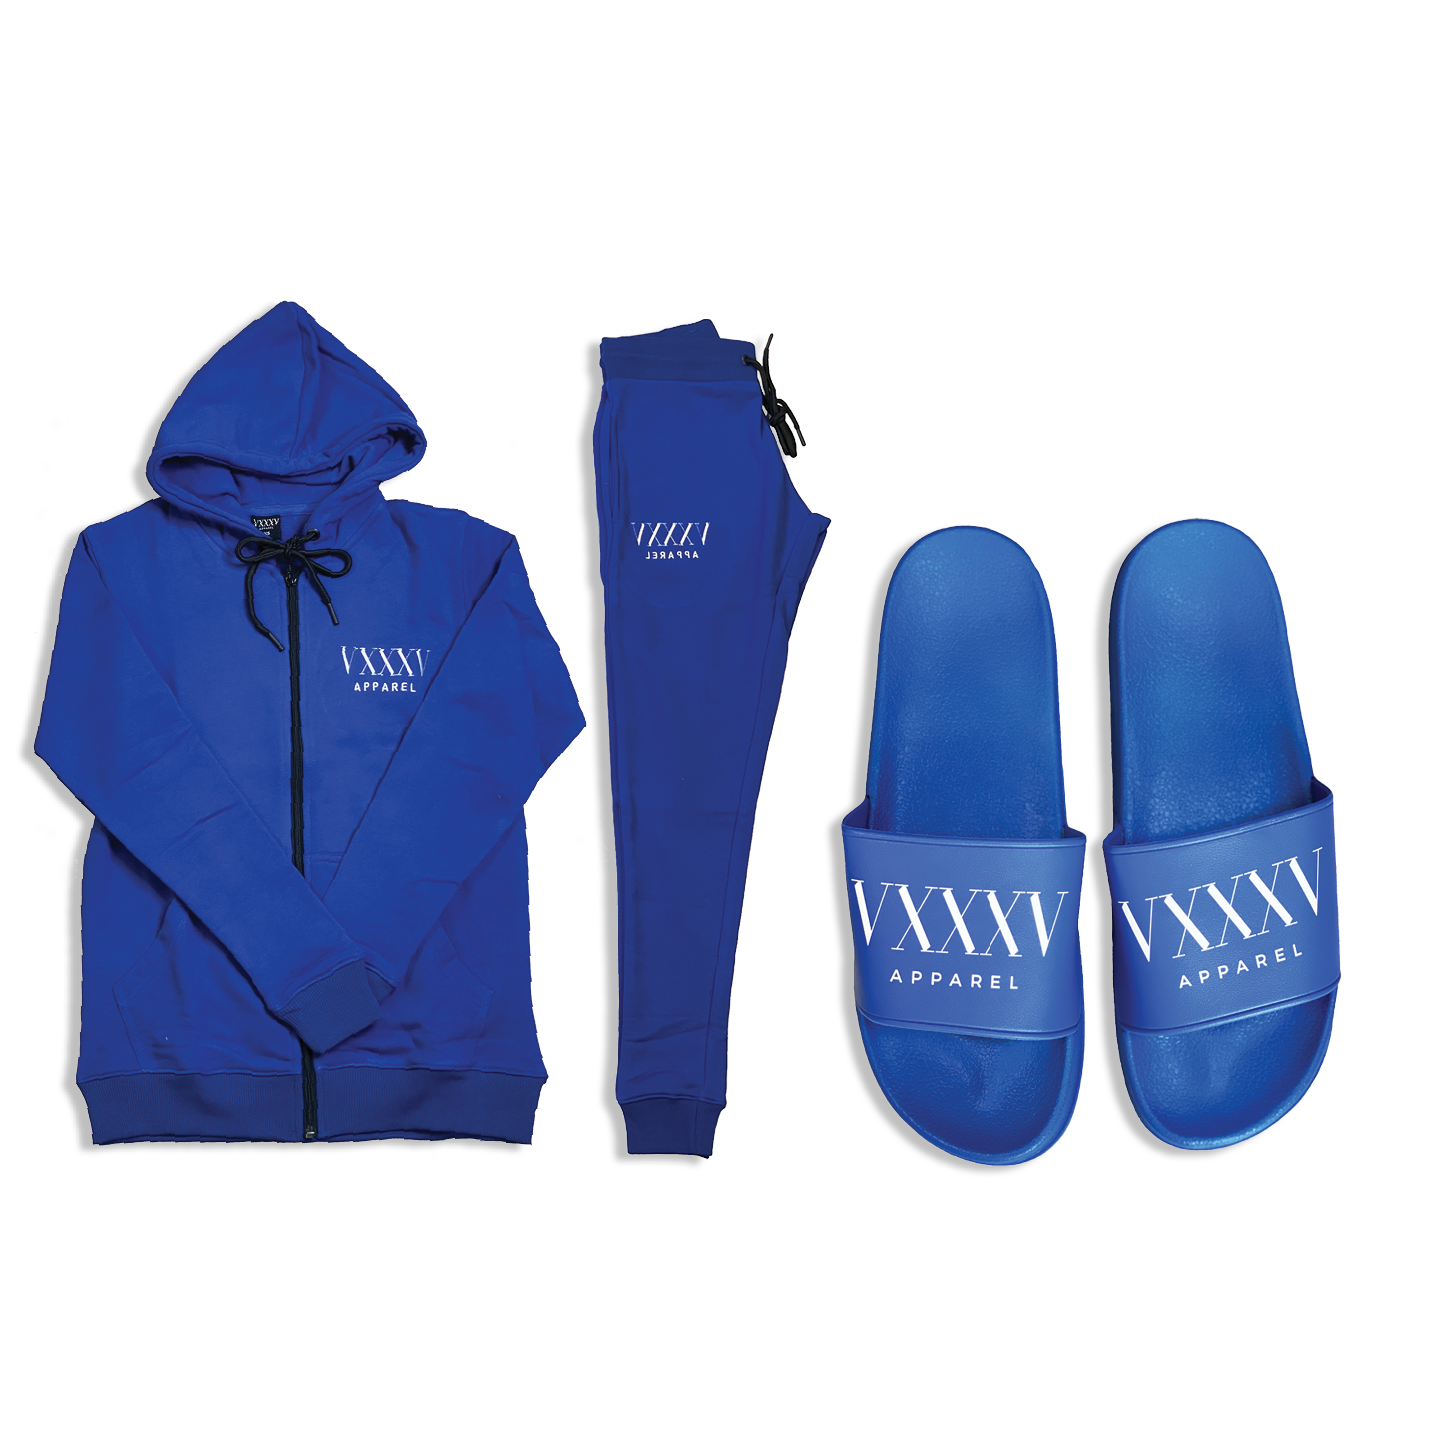 Sweatsuit & Comfort Slides Bundle